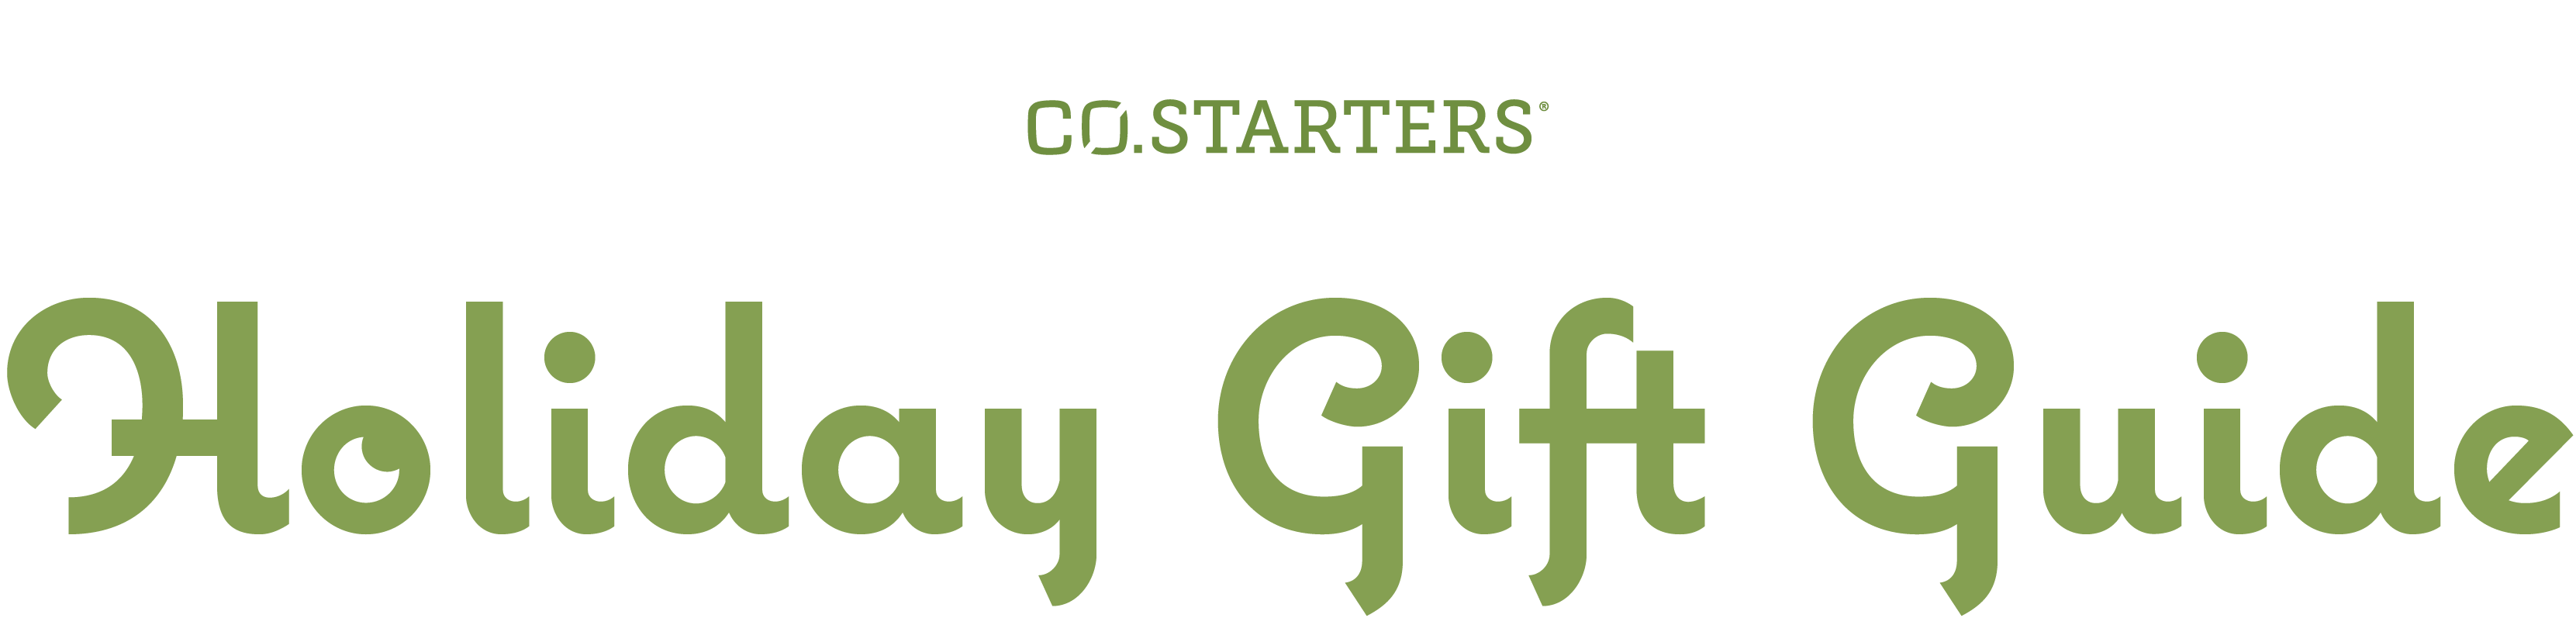 CO.STARTERS Holiday Gift Guide